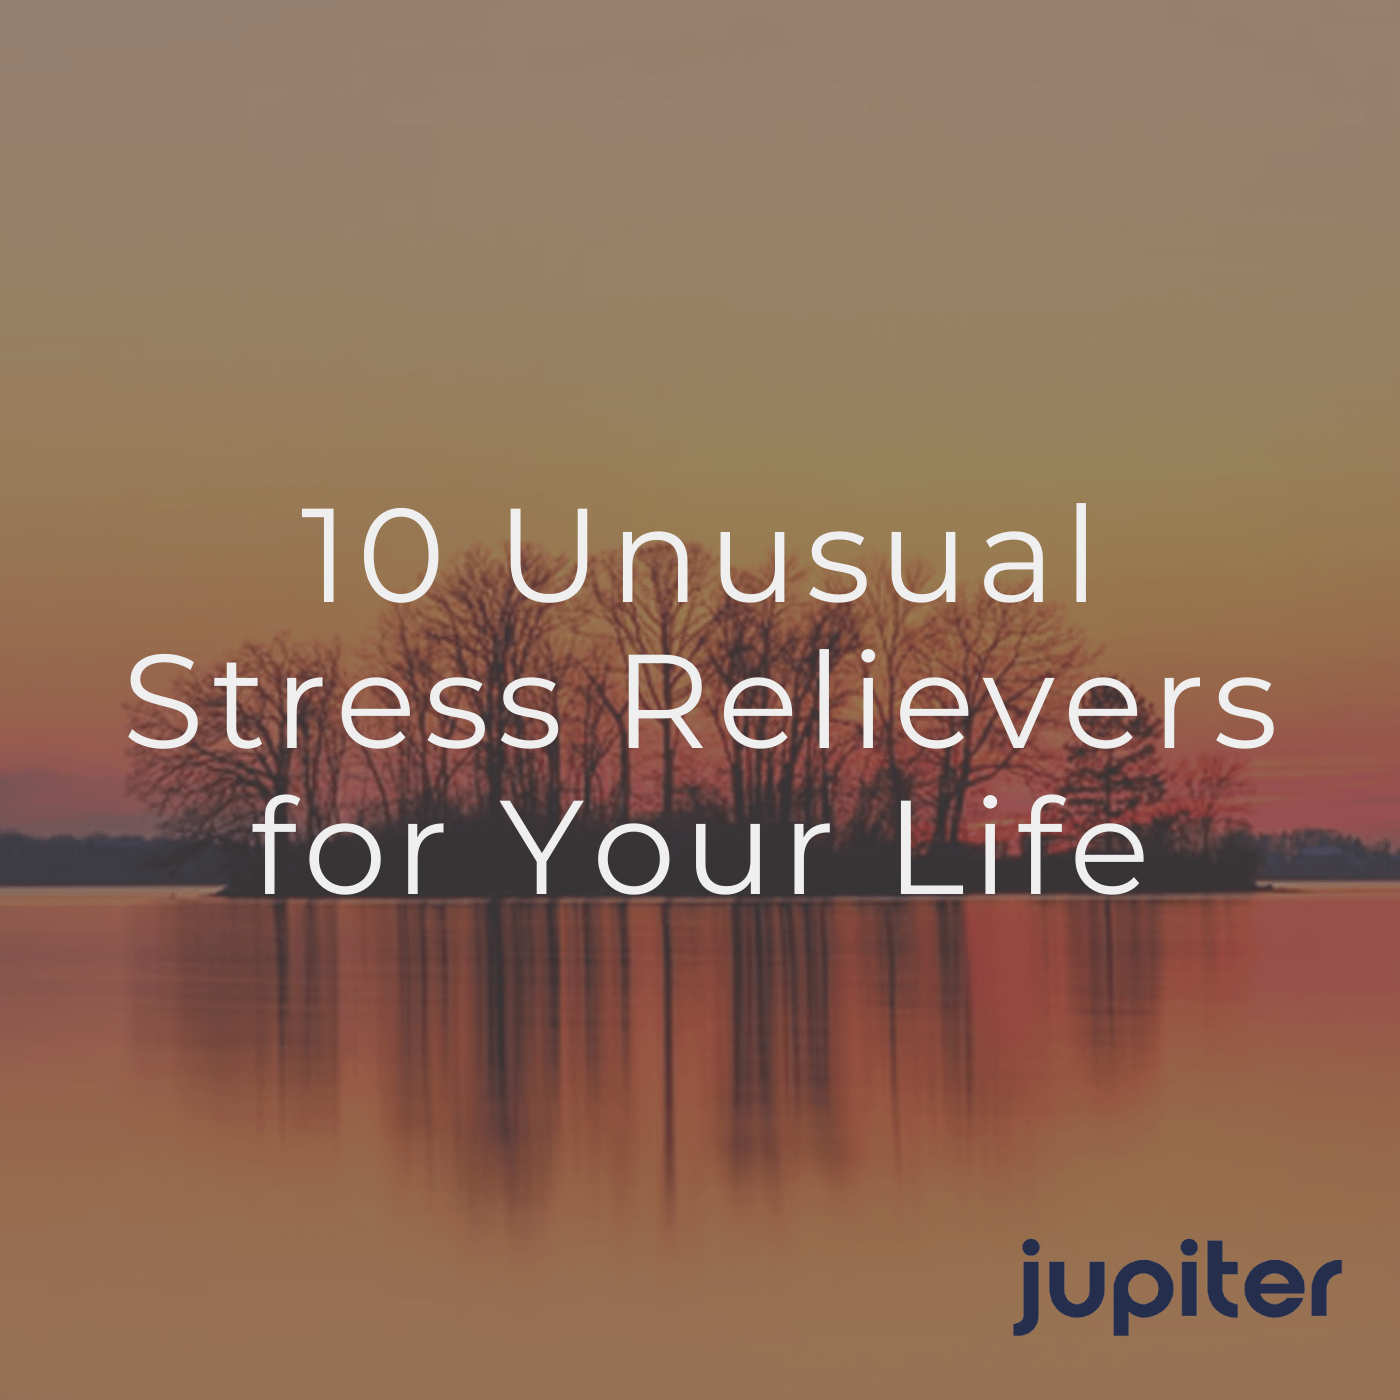 10 Unusual Stress Relievers for Your Life